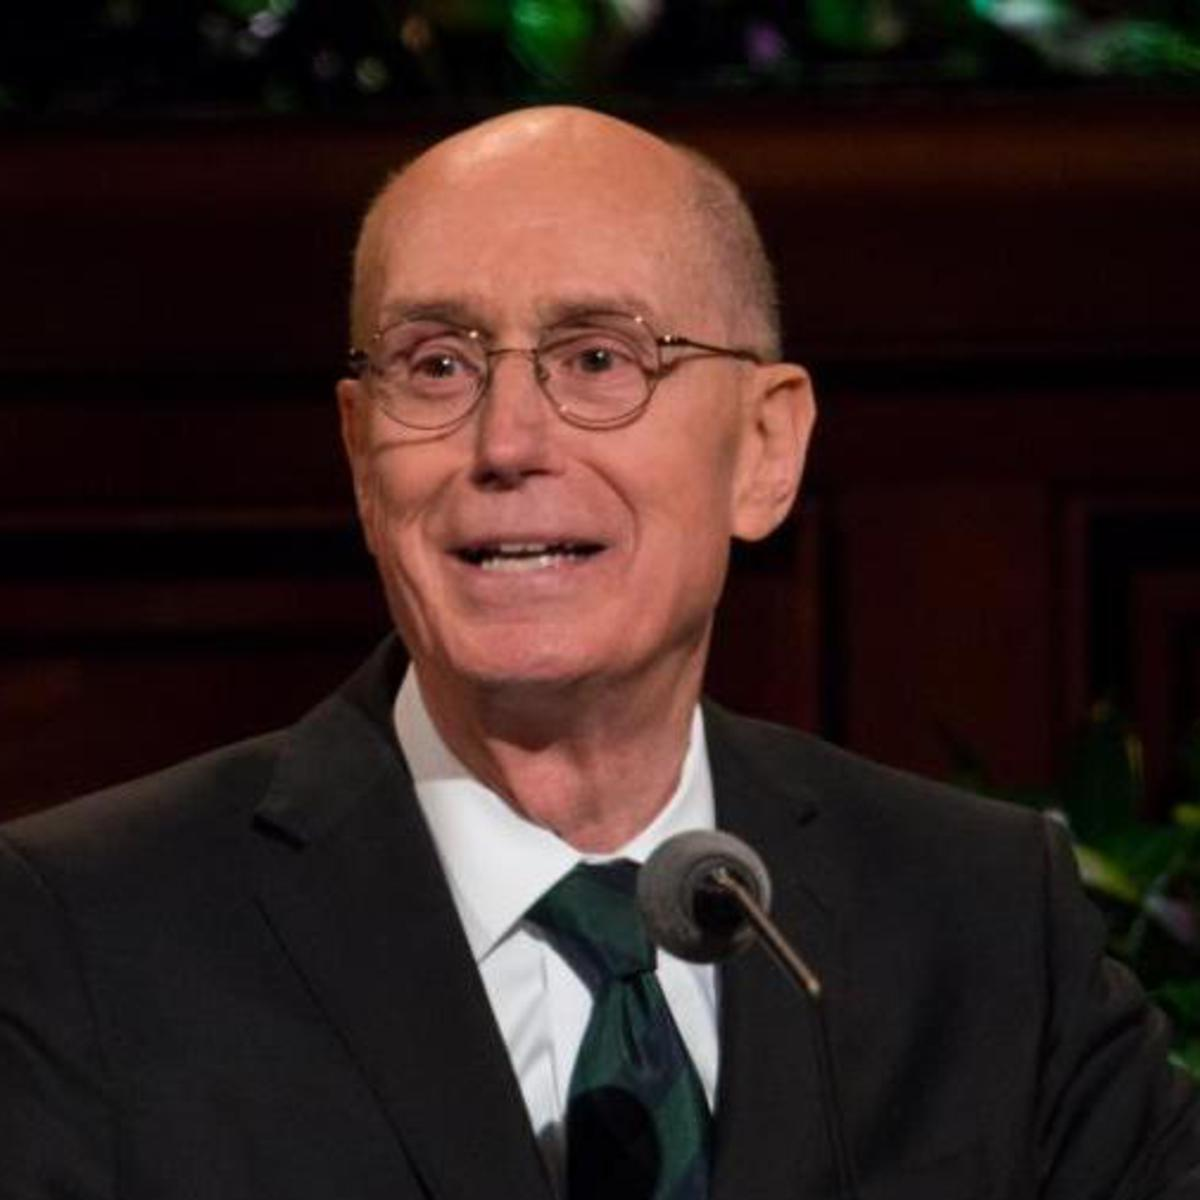 Pres Eyring